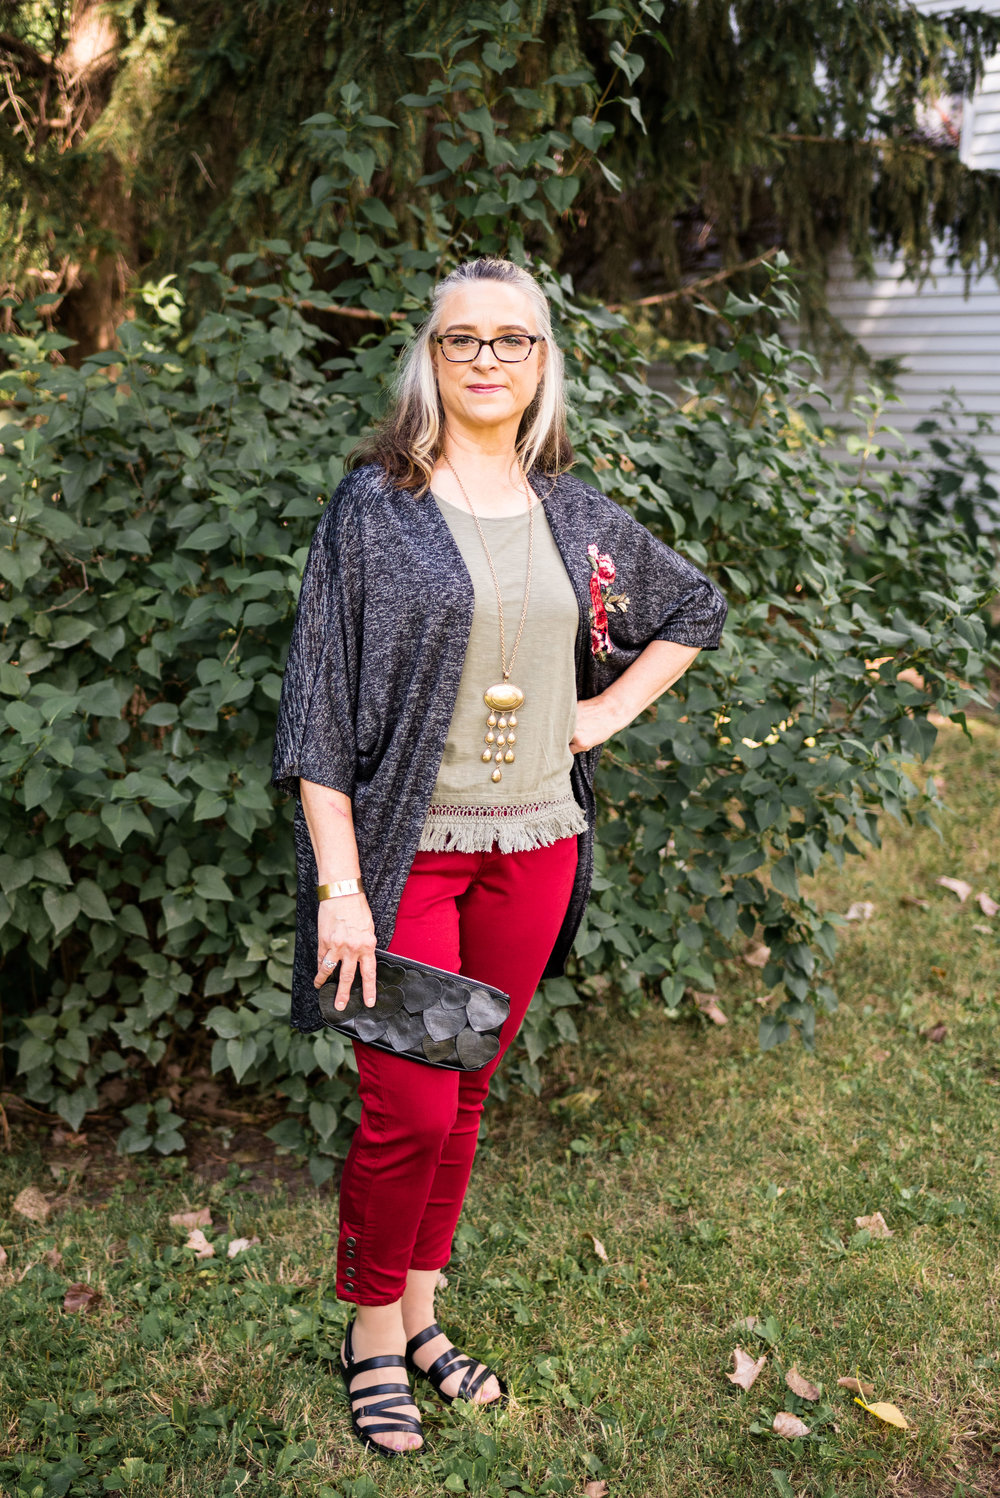 Amy - is a fashion and faith blogger located in Toledo, Ohio. She also enjoys several types of creative writing.